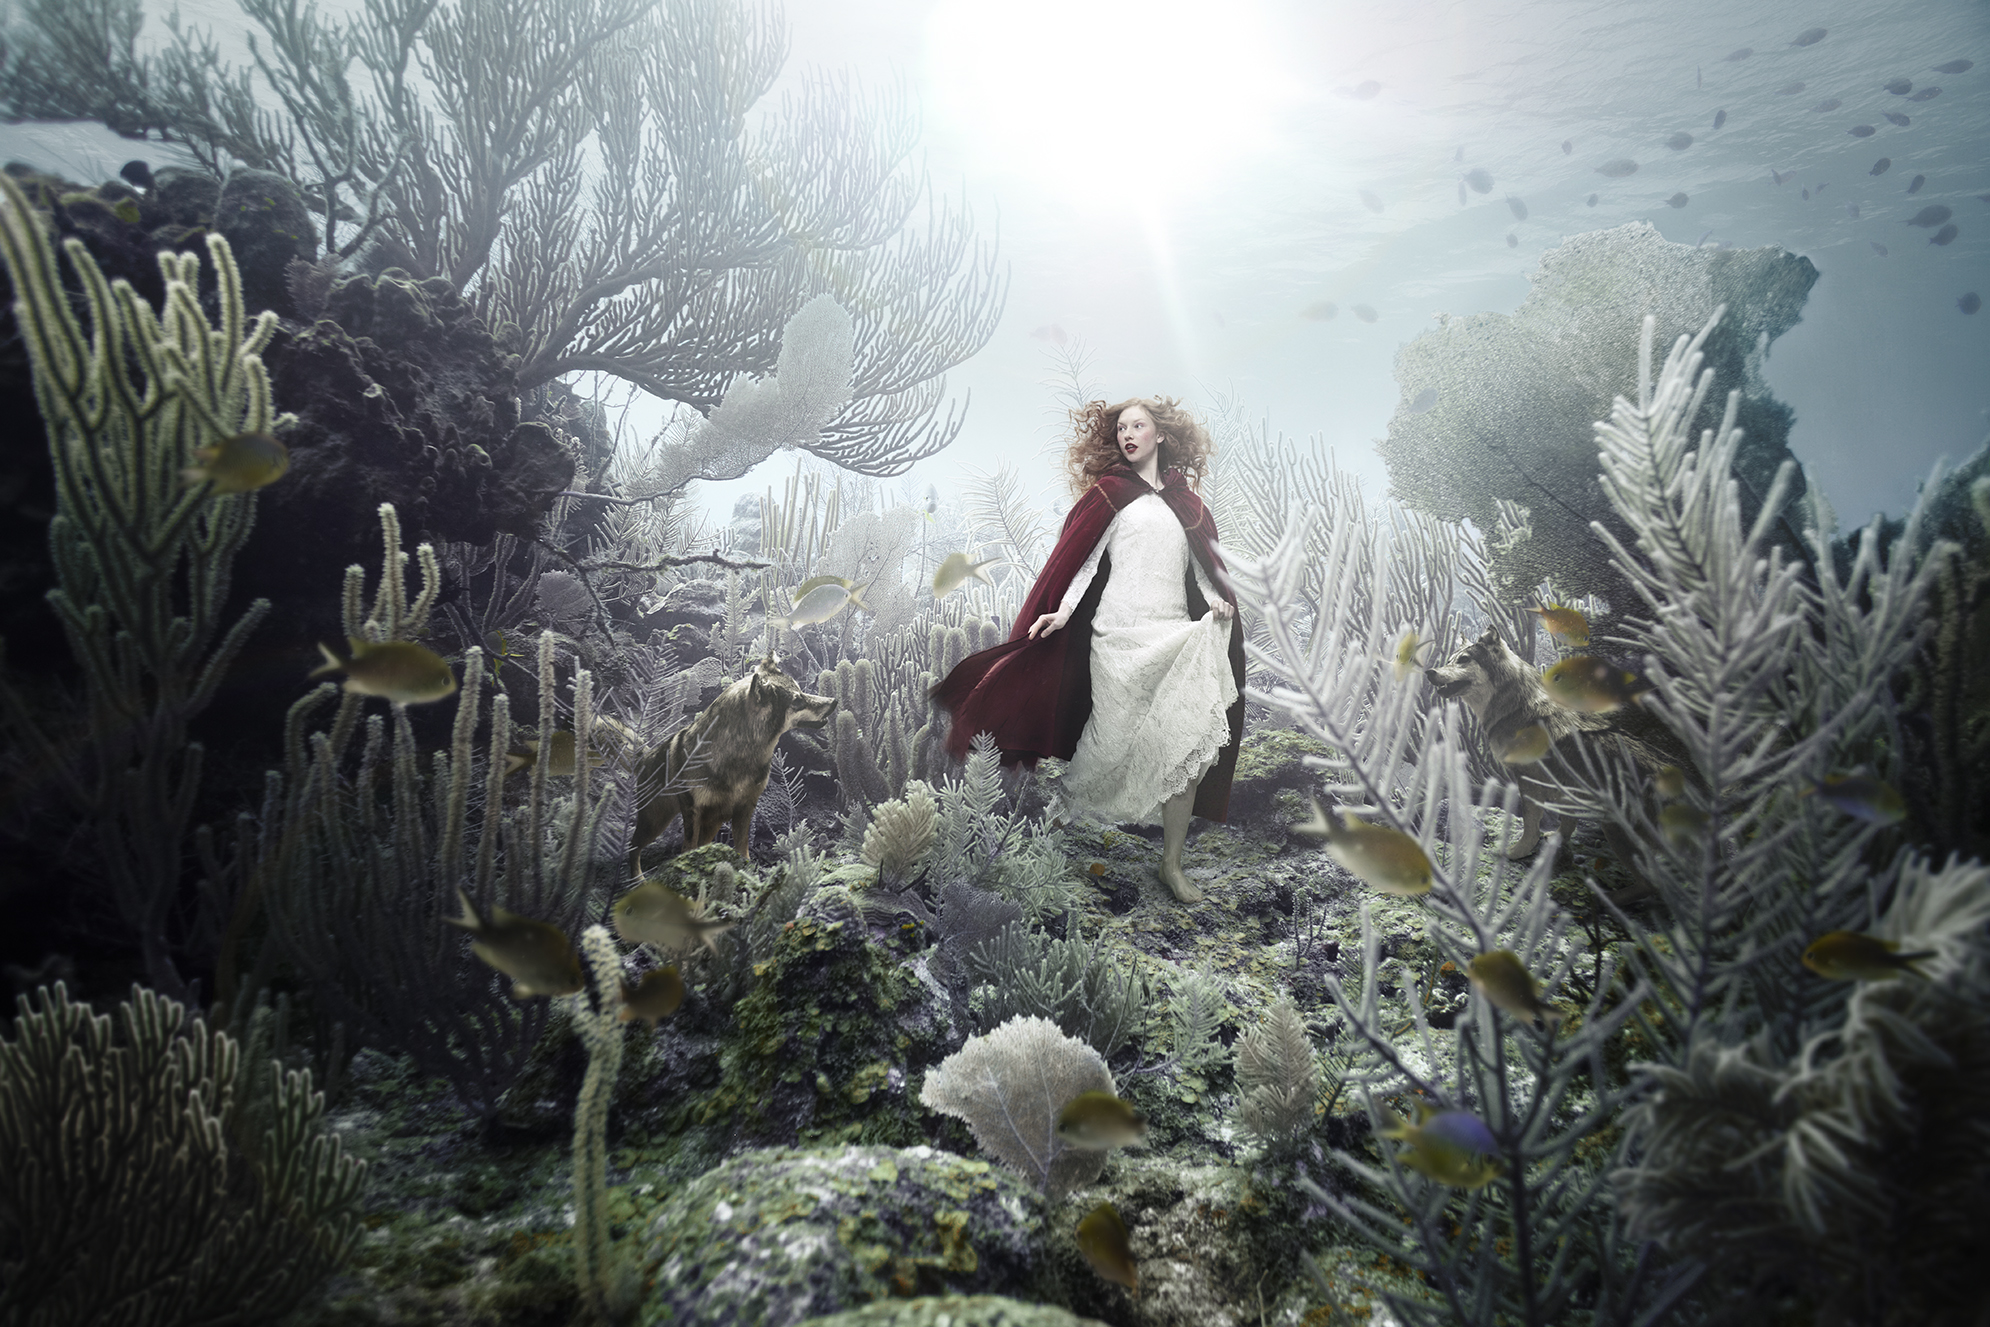 Andreas Franke_Little Red Riding Hood